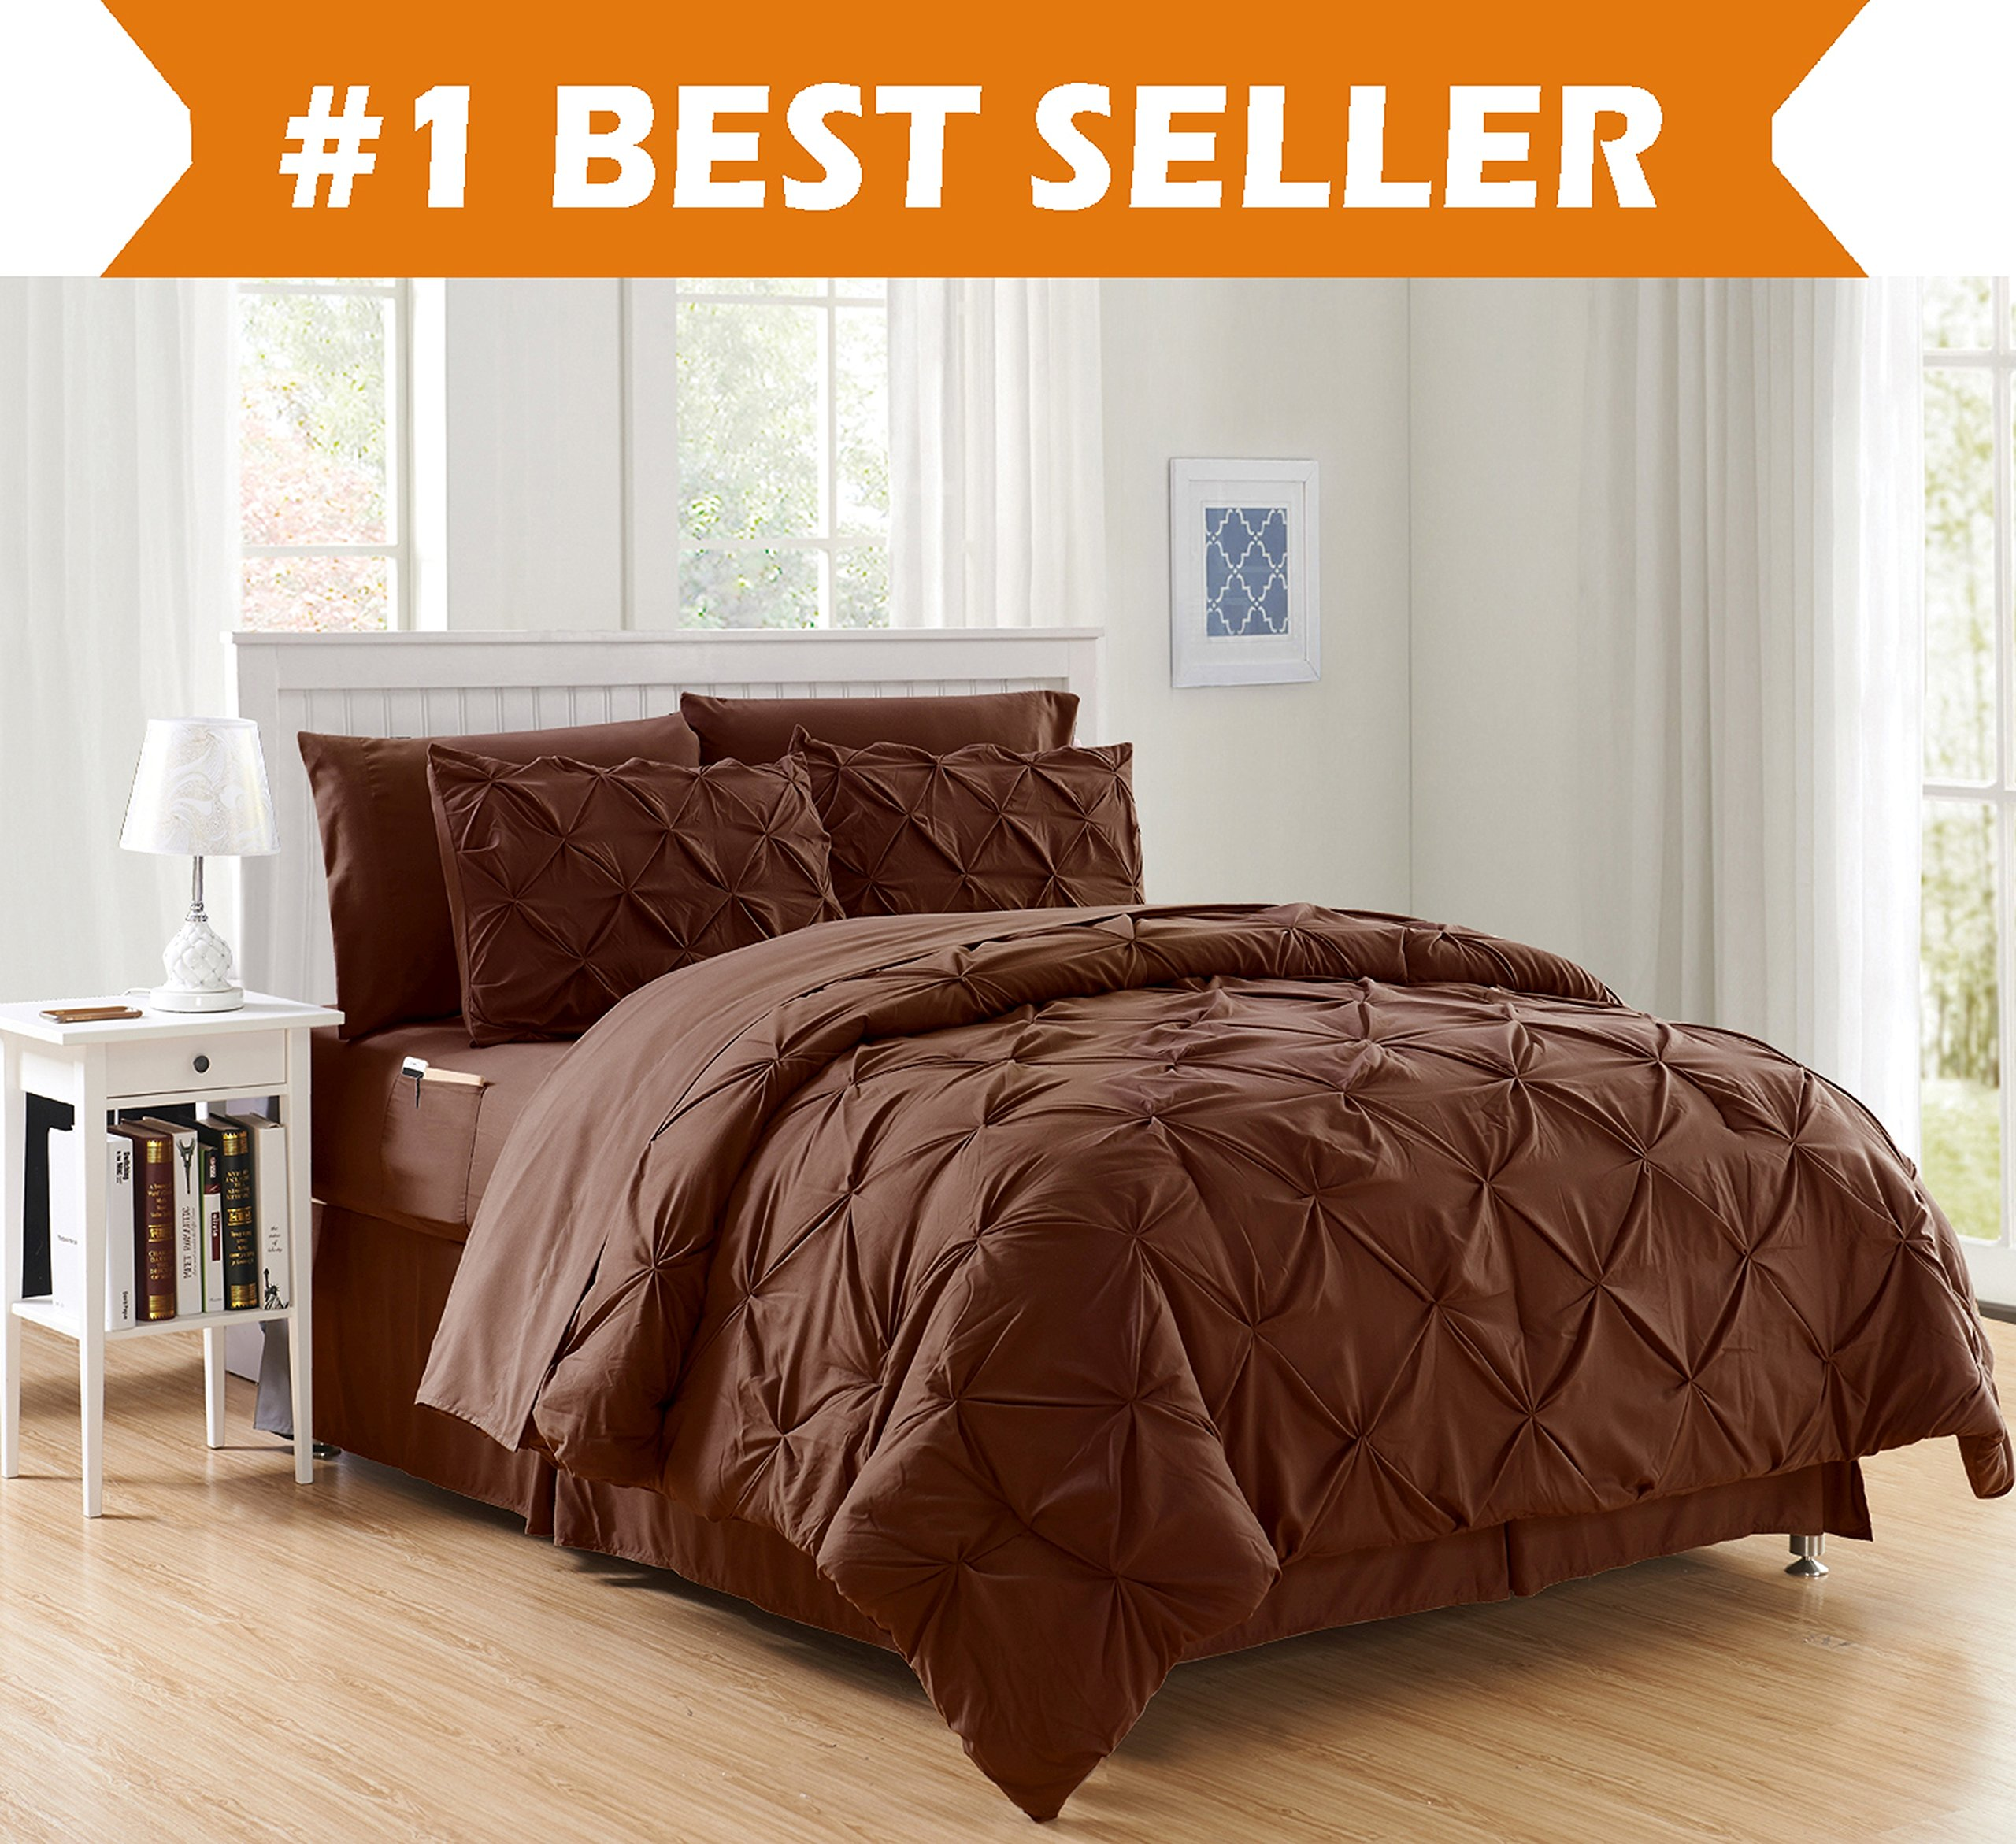 Luxury Best, Softest, Coziest 8-PIECE Bed-in-a-Bag Comforter Set on Amazon! Elegant Comfort - Silky Soft Complete Set Includes Bed Sheet Set with Double Sided Storage Pockets, King/Cal King, Chocolate